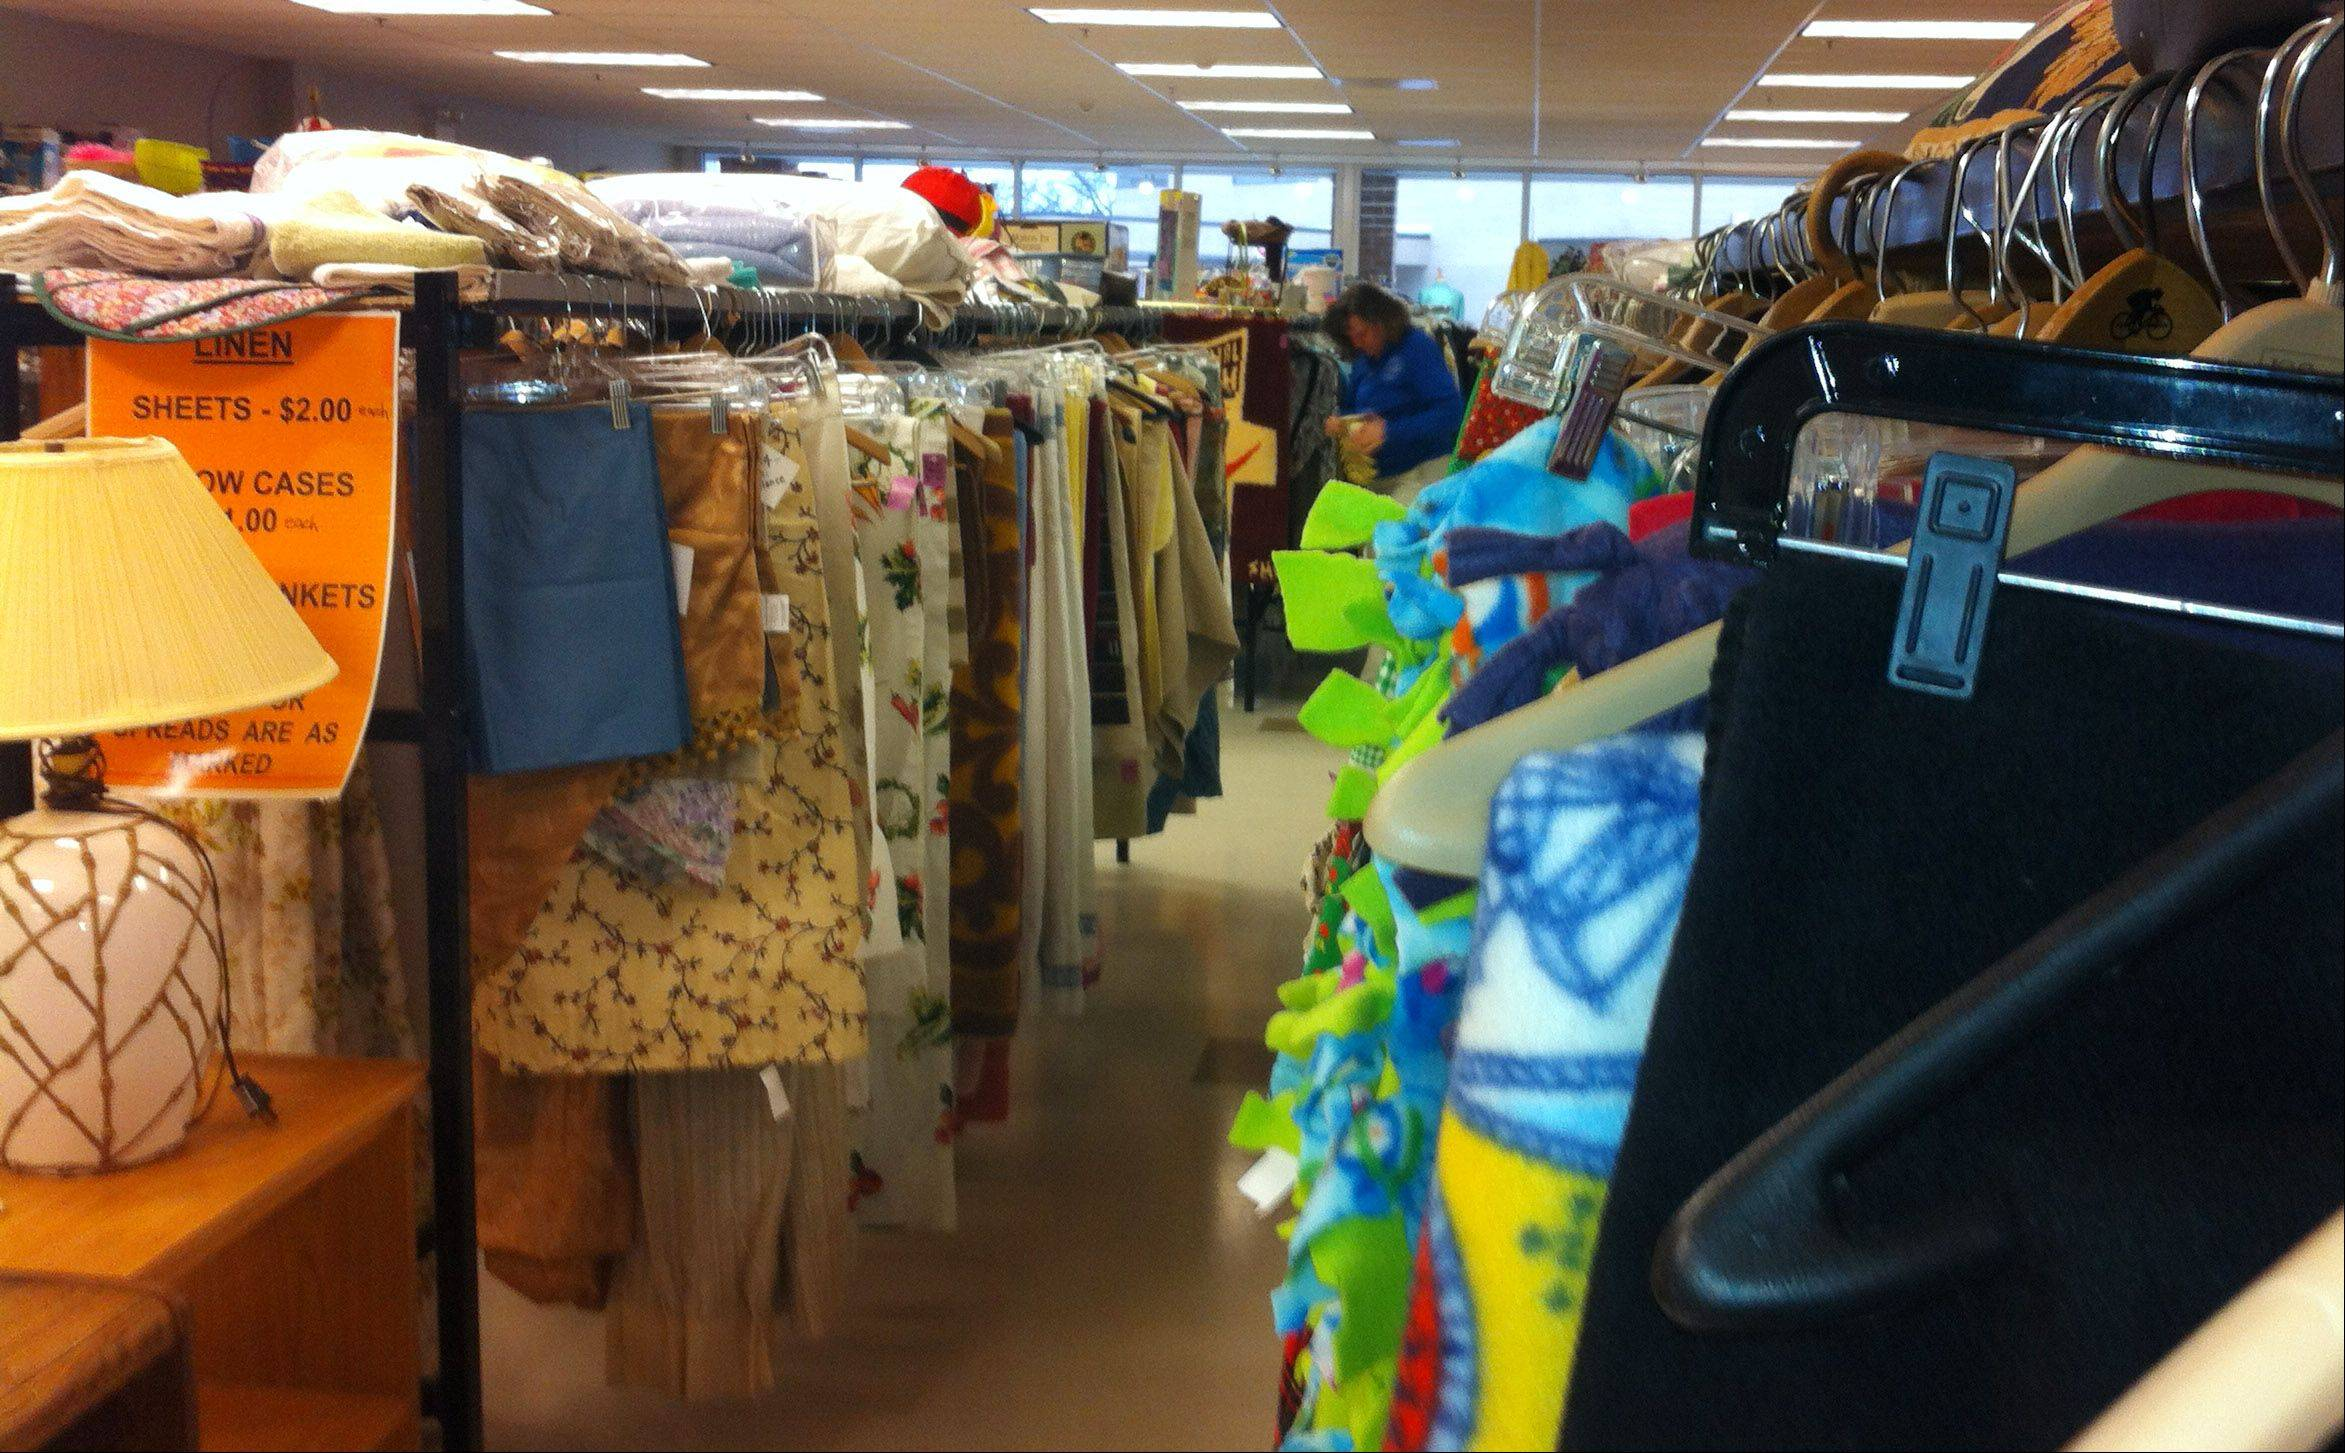 The St. Vincent de Paul thrift store in Libertyville, which features clothing, furniture and household items, quietly has been helping Lake County residents in need since opening in November but will celebrate its grand opening Monday. It's located at 1125 S. Milwaukee Ave. in the Greentree shopping center.